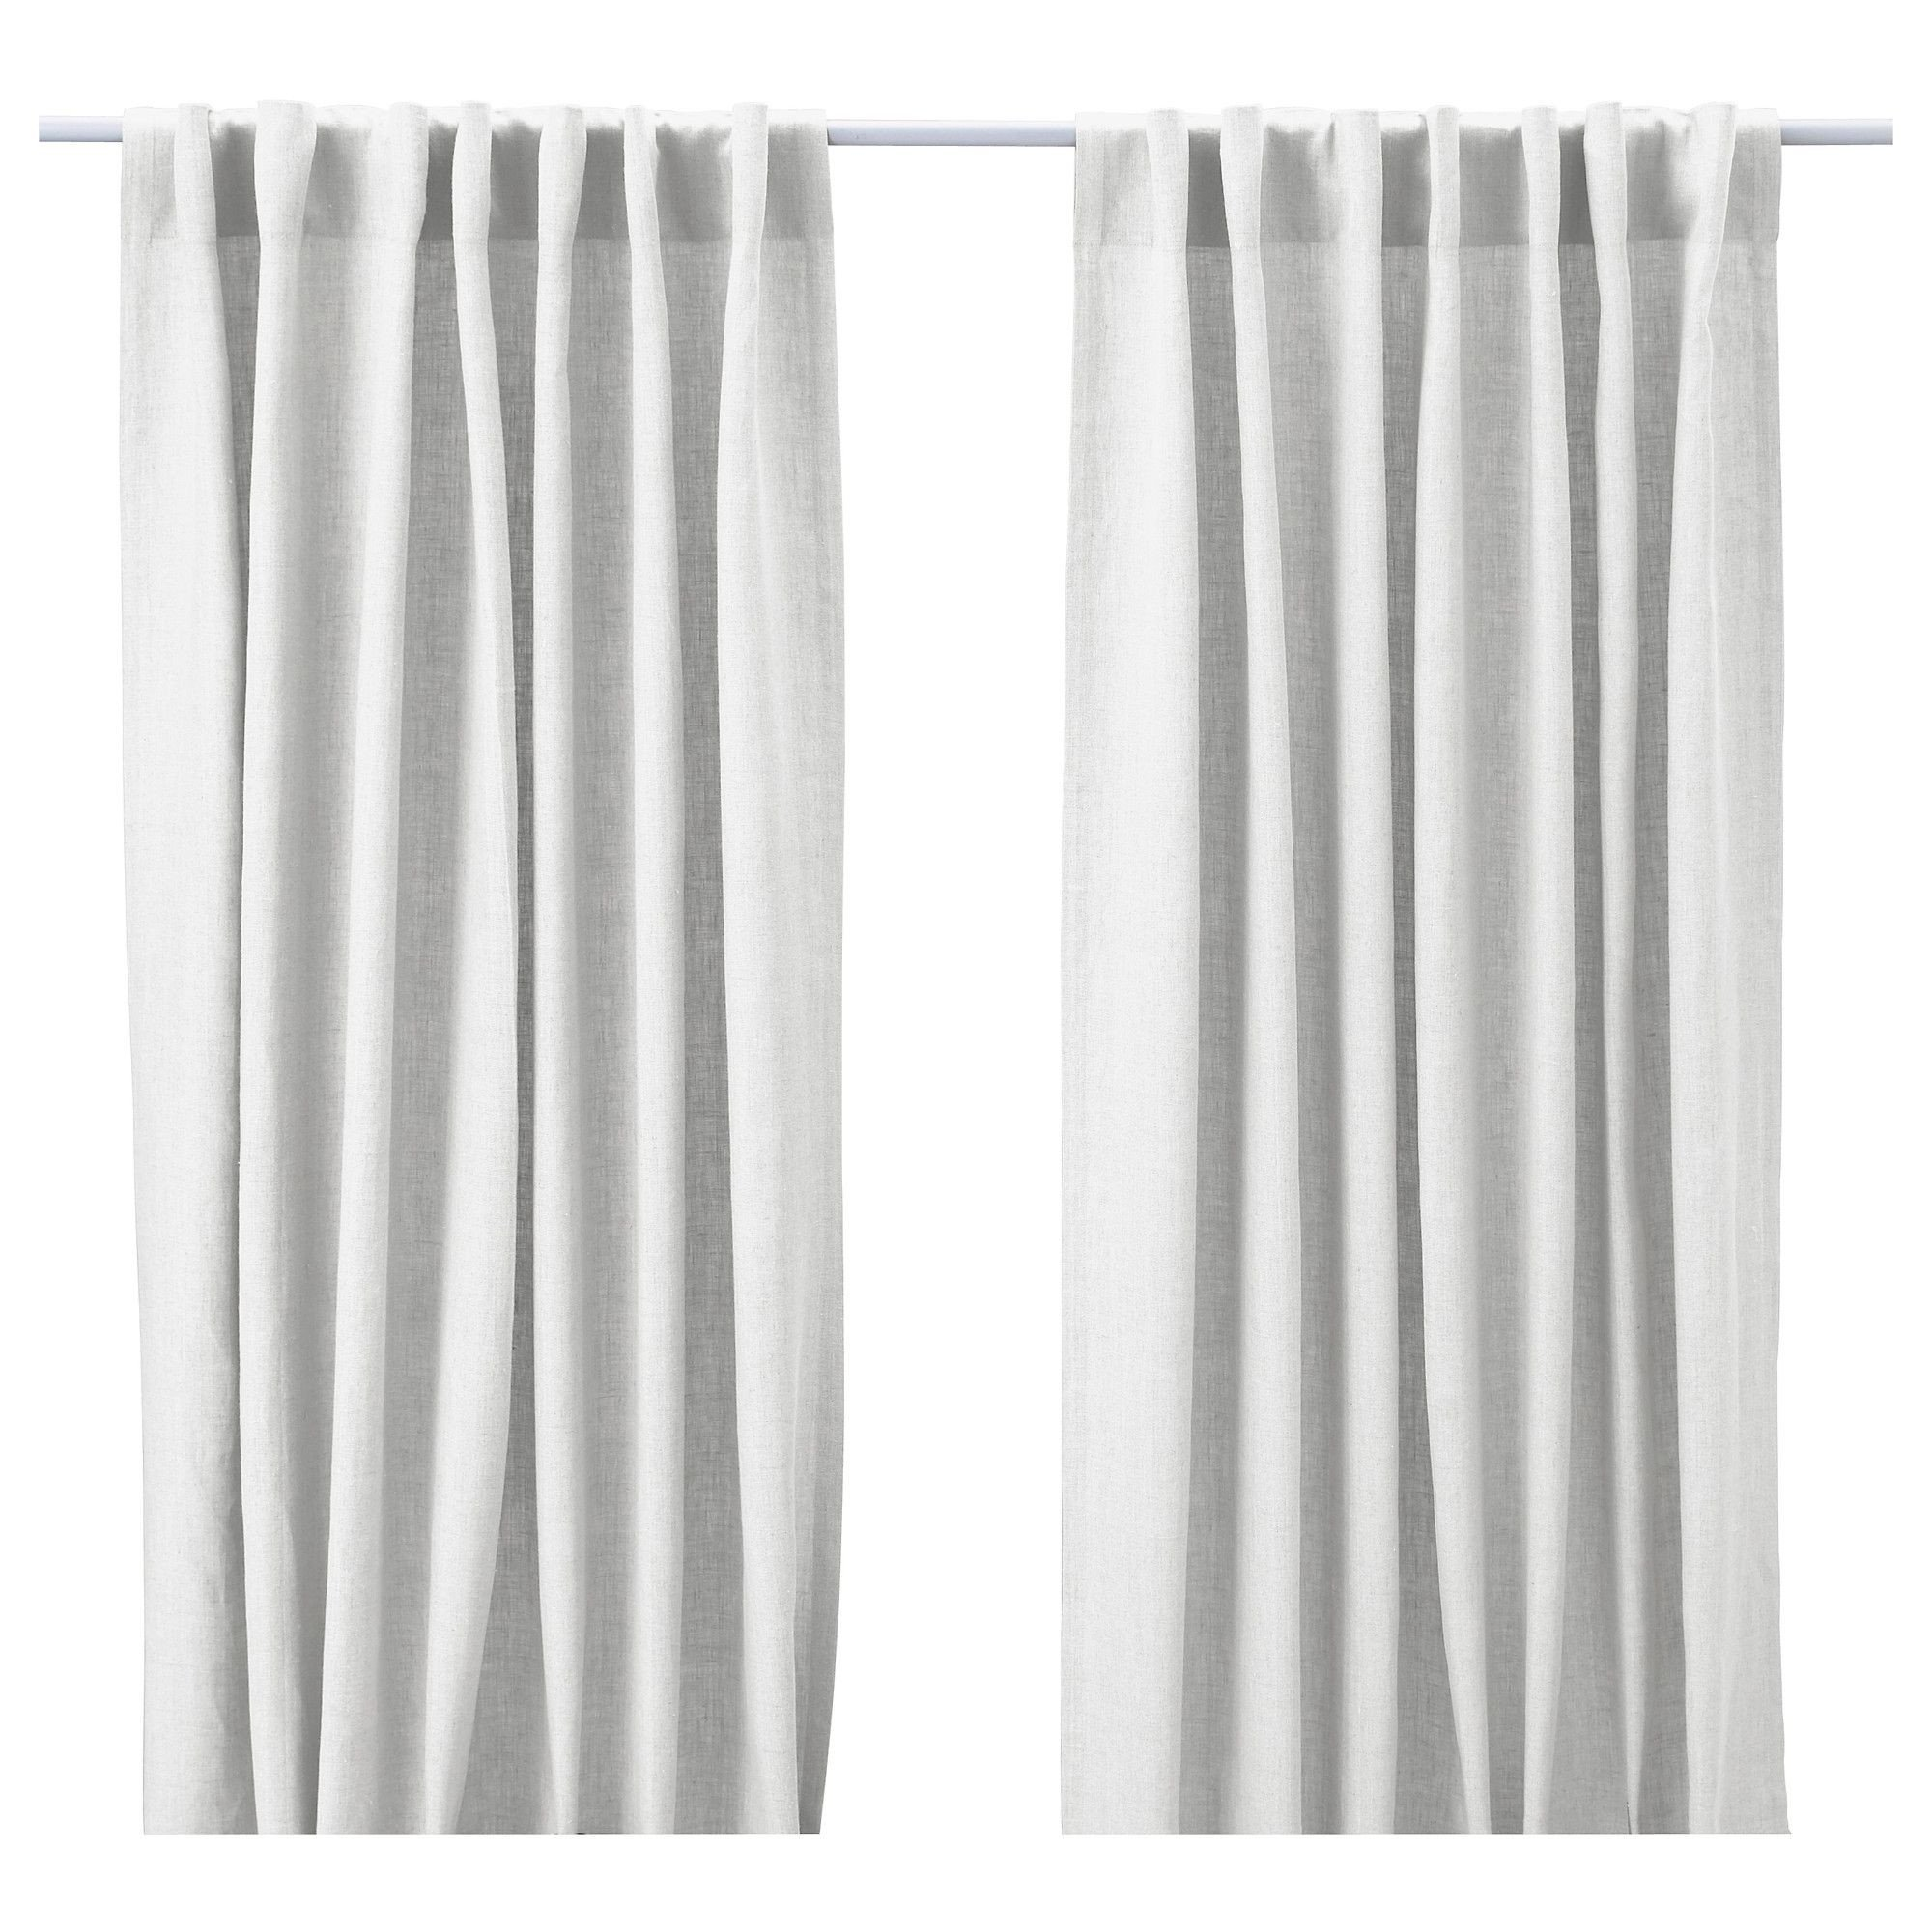 Black and White Bedroom Curtains New Us Furniture and Home Furnishings